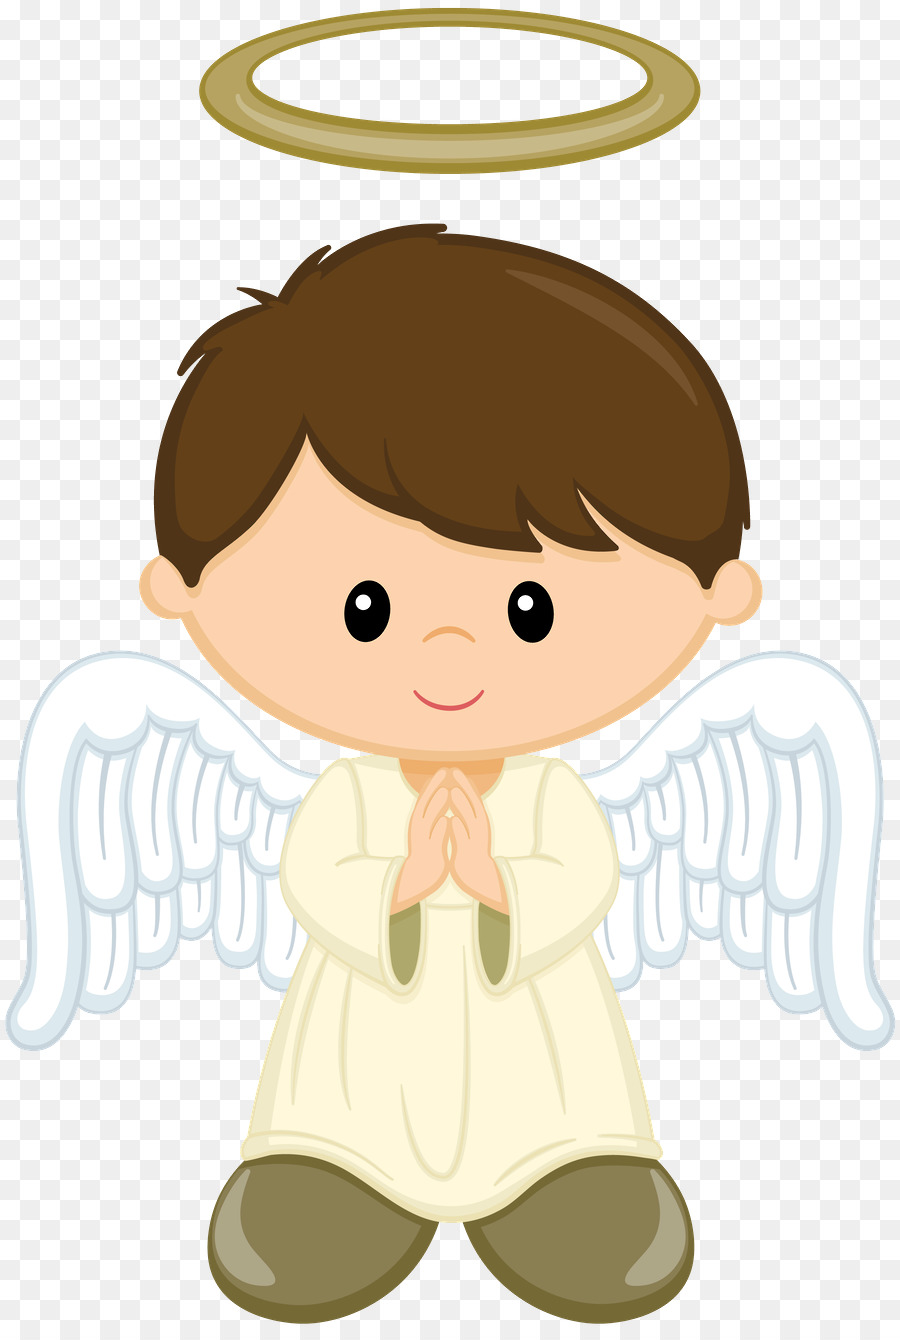 hight resolution of boy angel clipart clip art free download